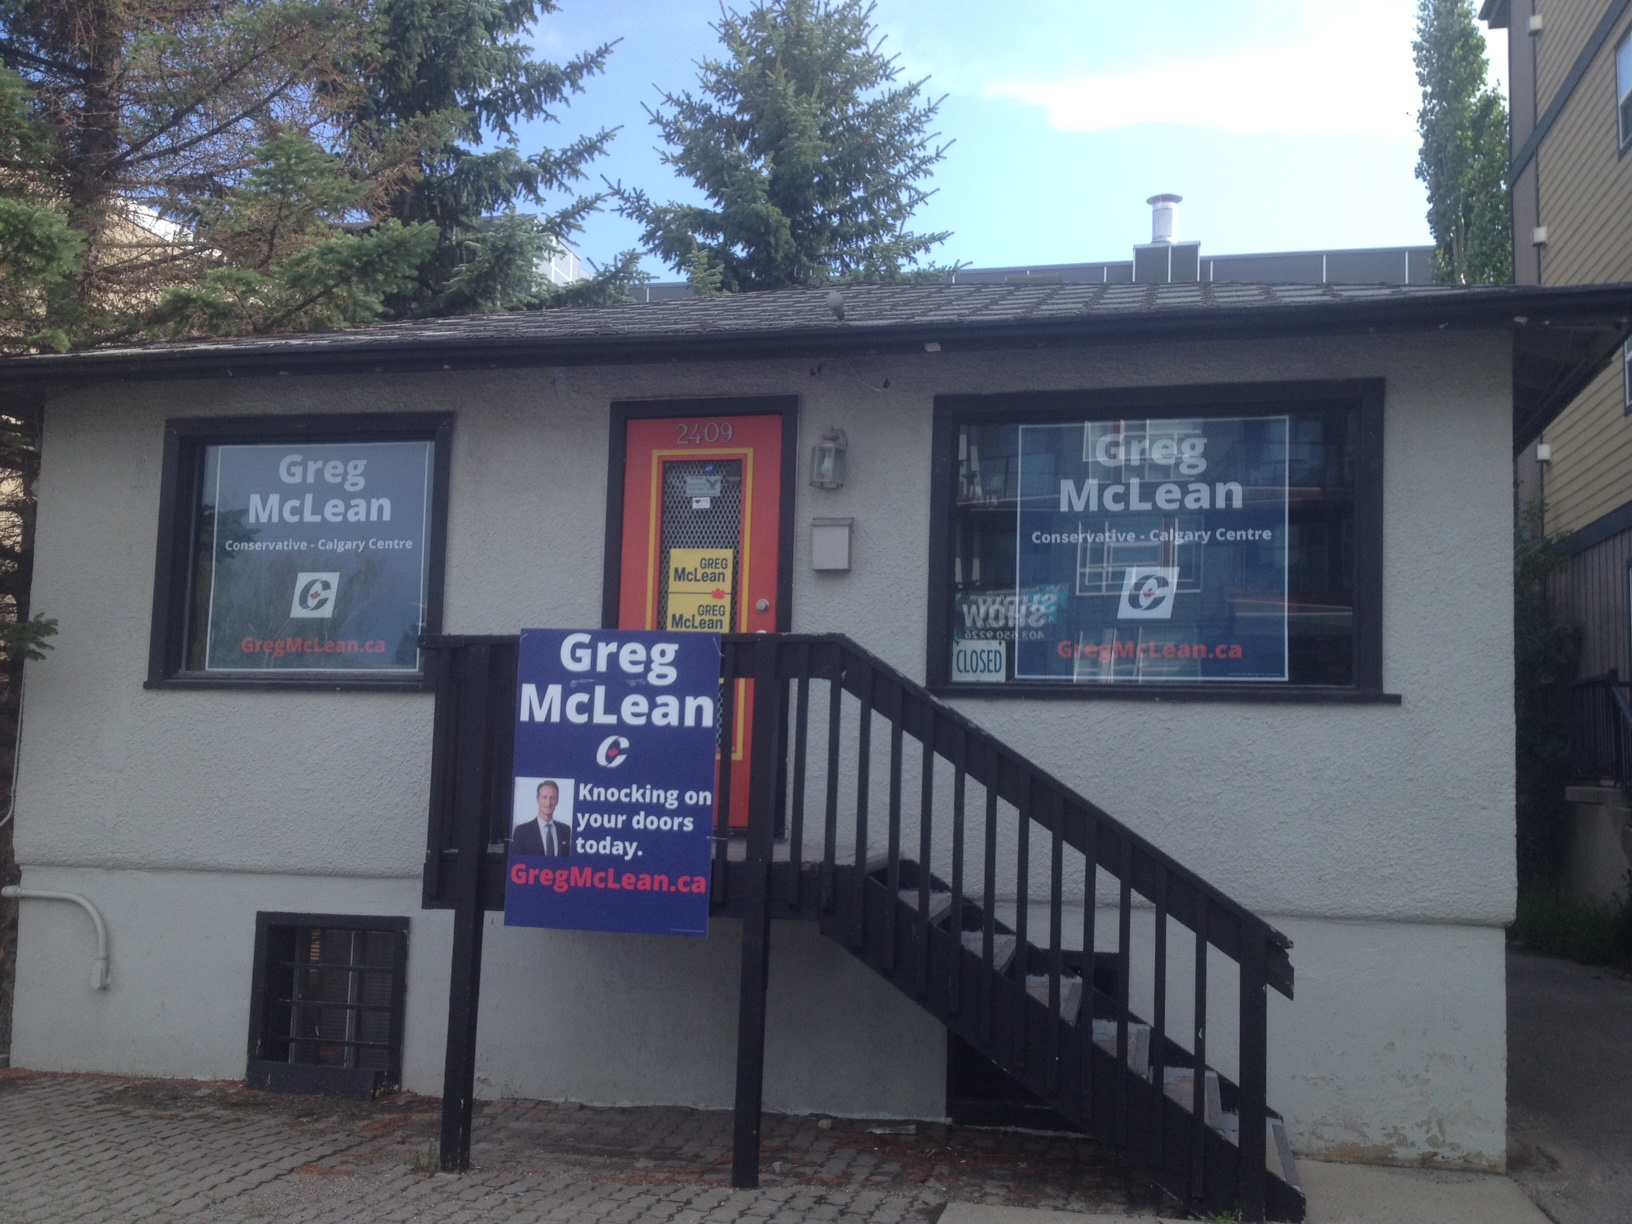 Our new campaign HQ is now operational at 2409 - 33rd Ave (on the south side of 33rd, just east of Crowchild Tr). Calgary old-timers will remember this place as the former Smilin' Buddha Tattoo Parlour - a local institution! More recently, it served as Greg Clark's campaign HQ in the provincial election.